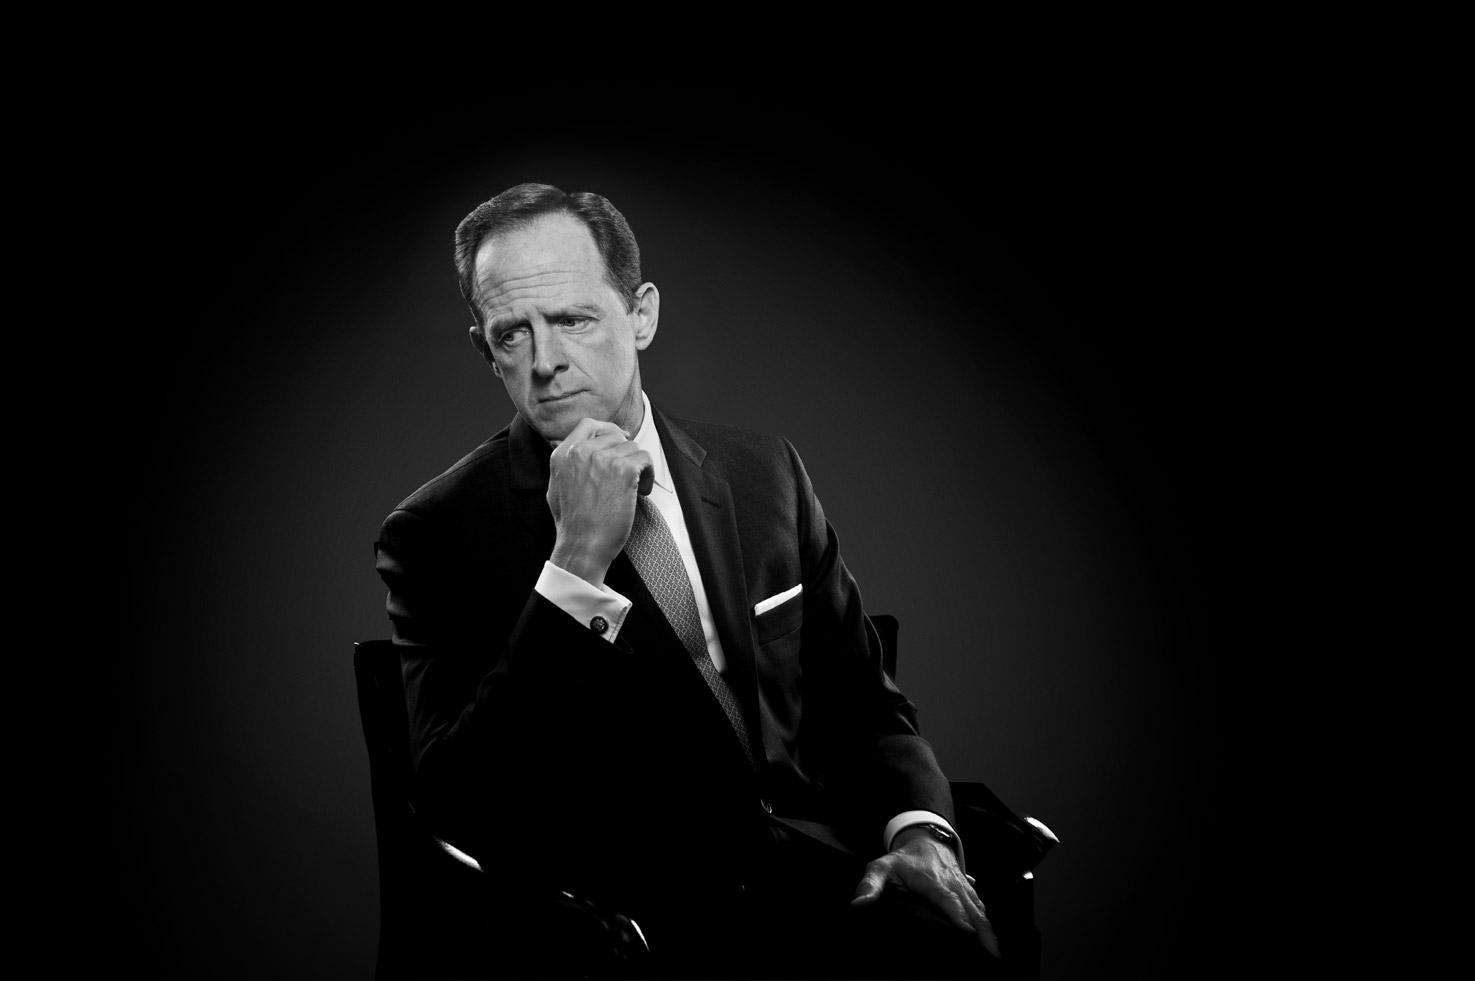 Black and white portrait of US Senator Pat Toomey seated and resting his chin on his hand